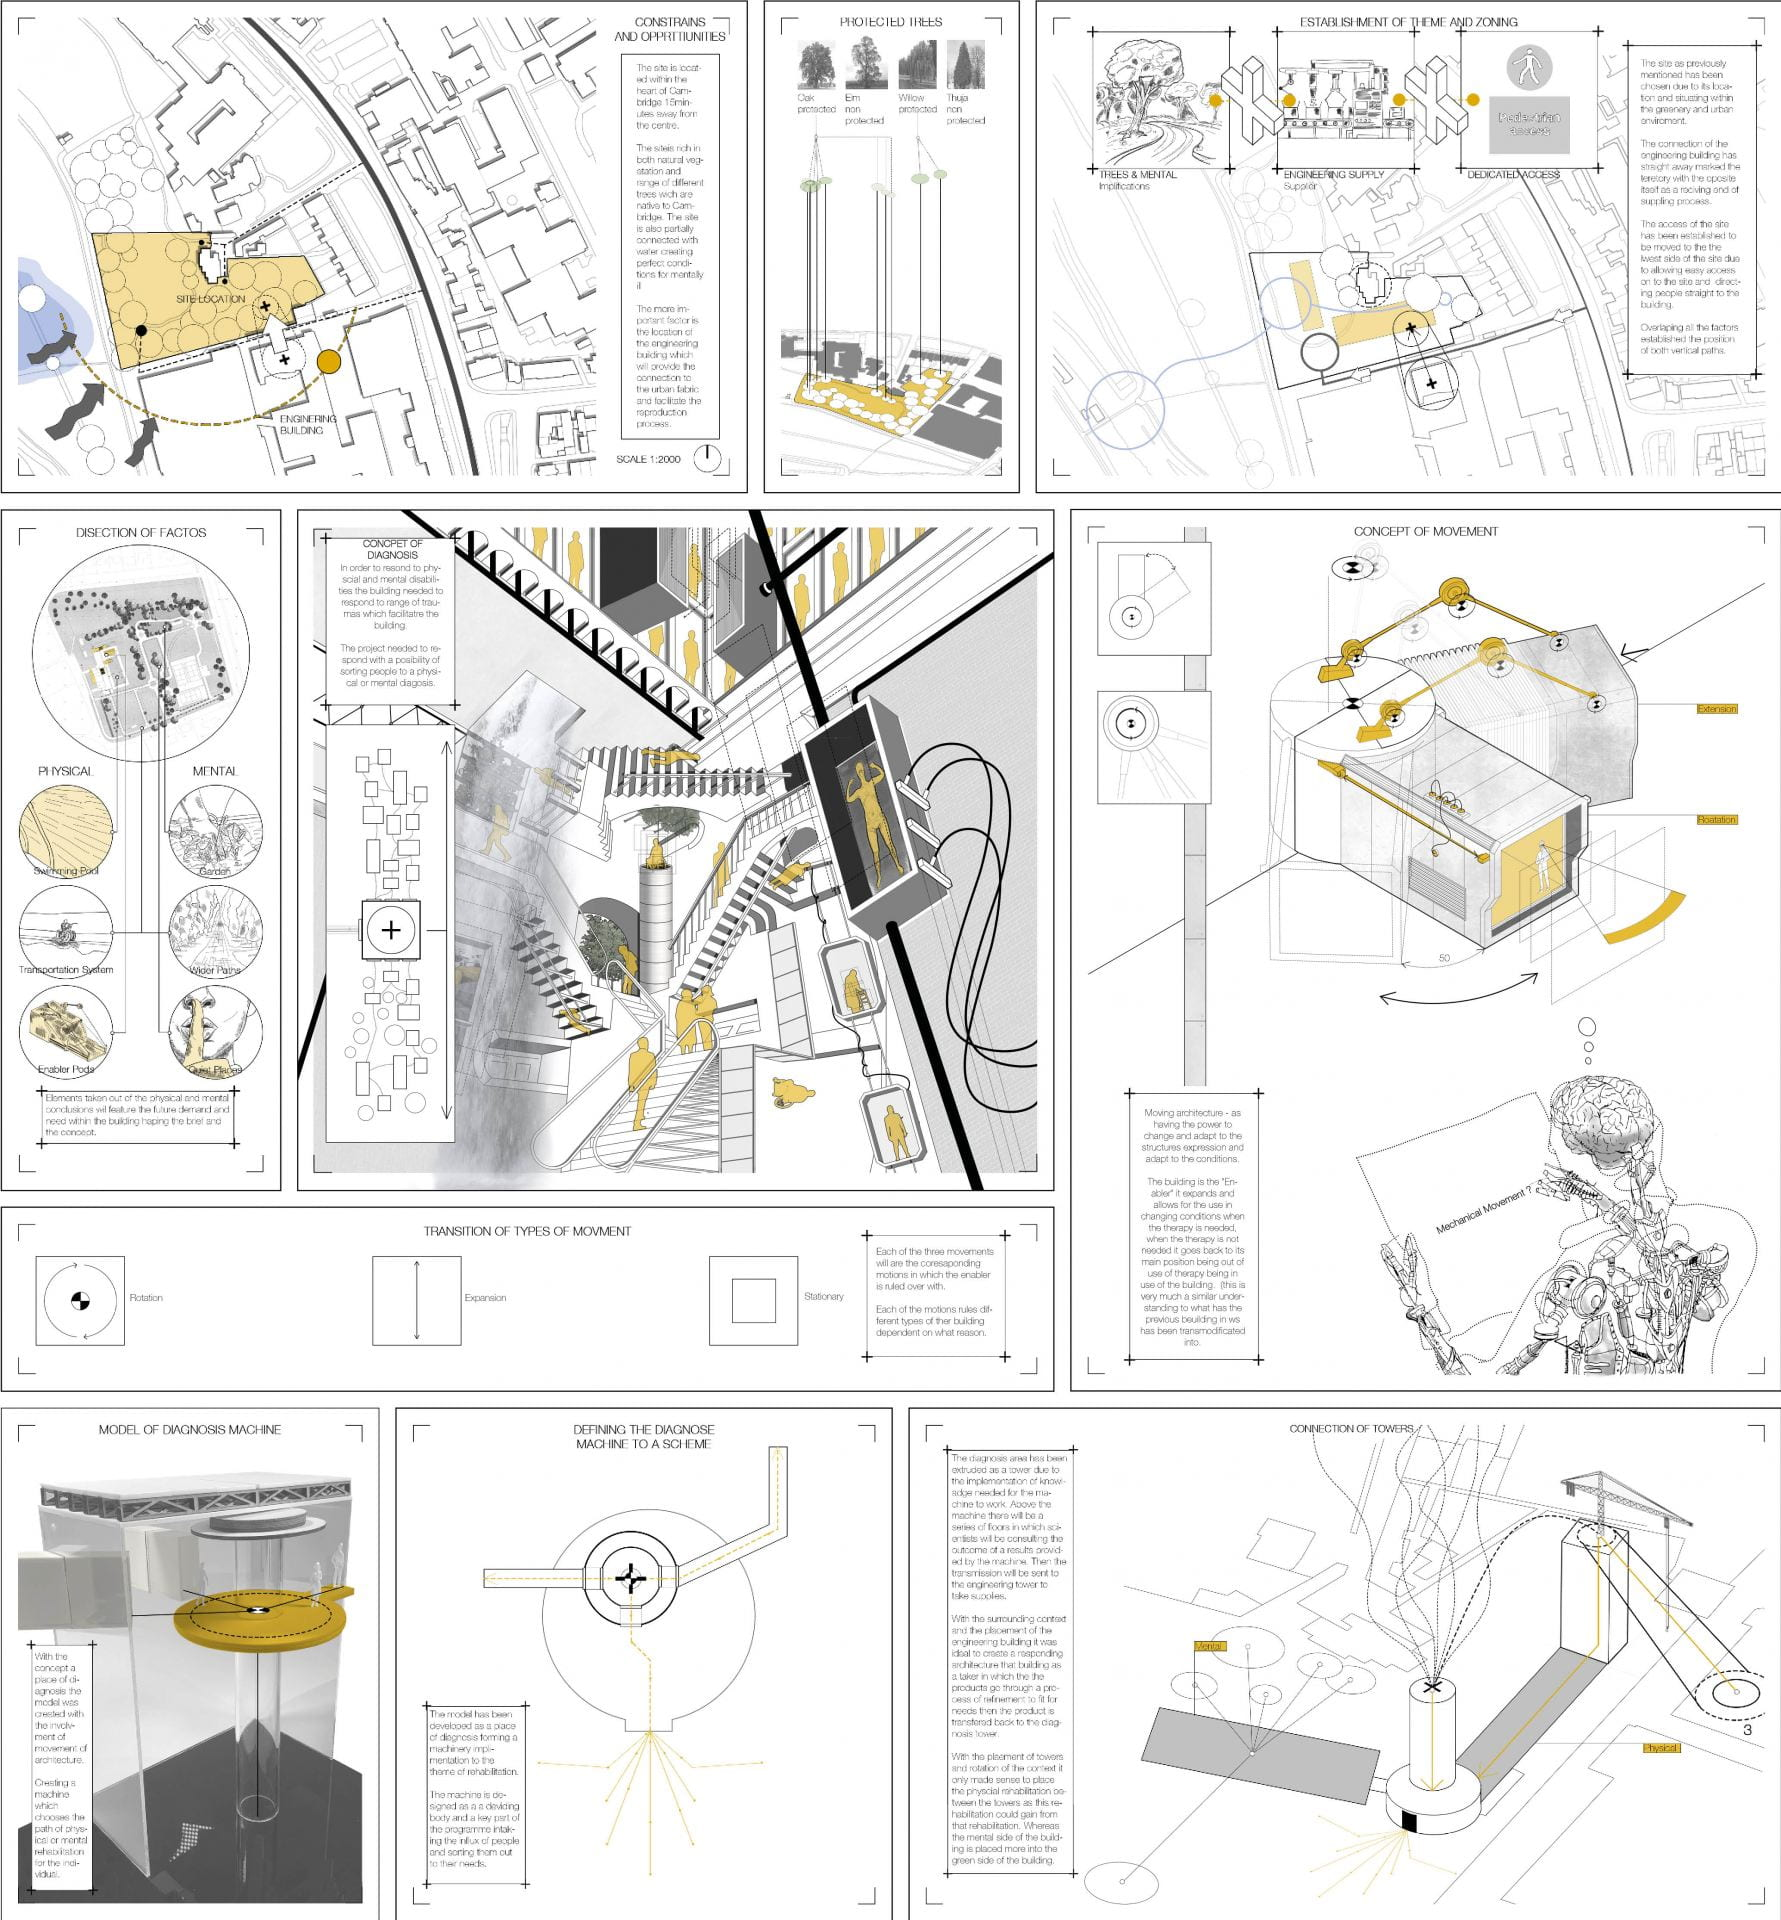 A selection of diagrams making up the implementation of thesis to new site.